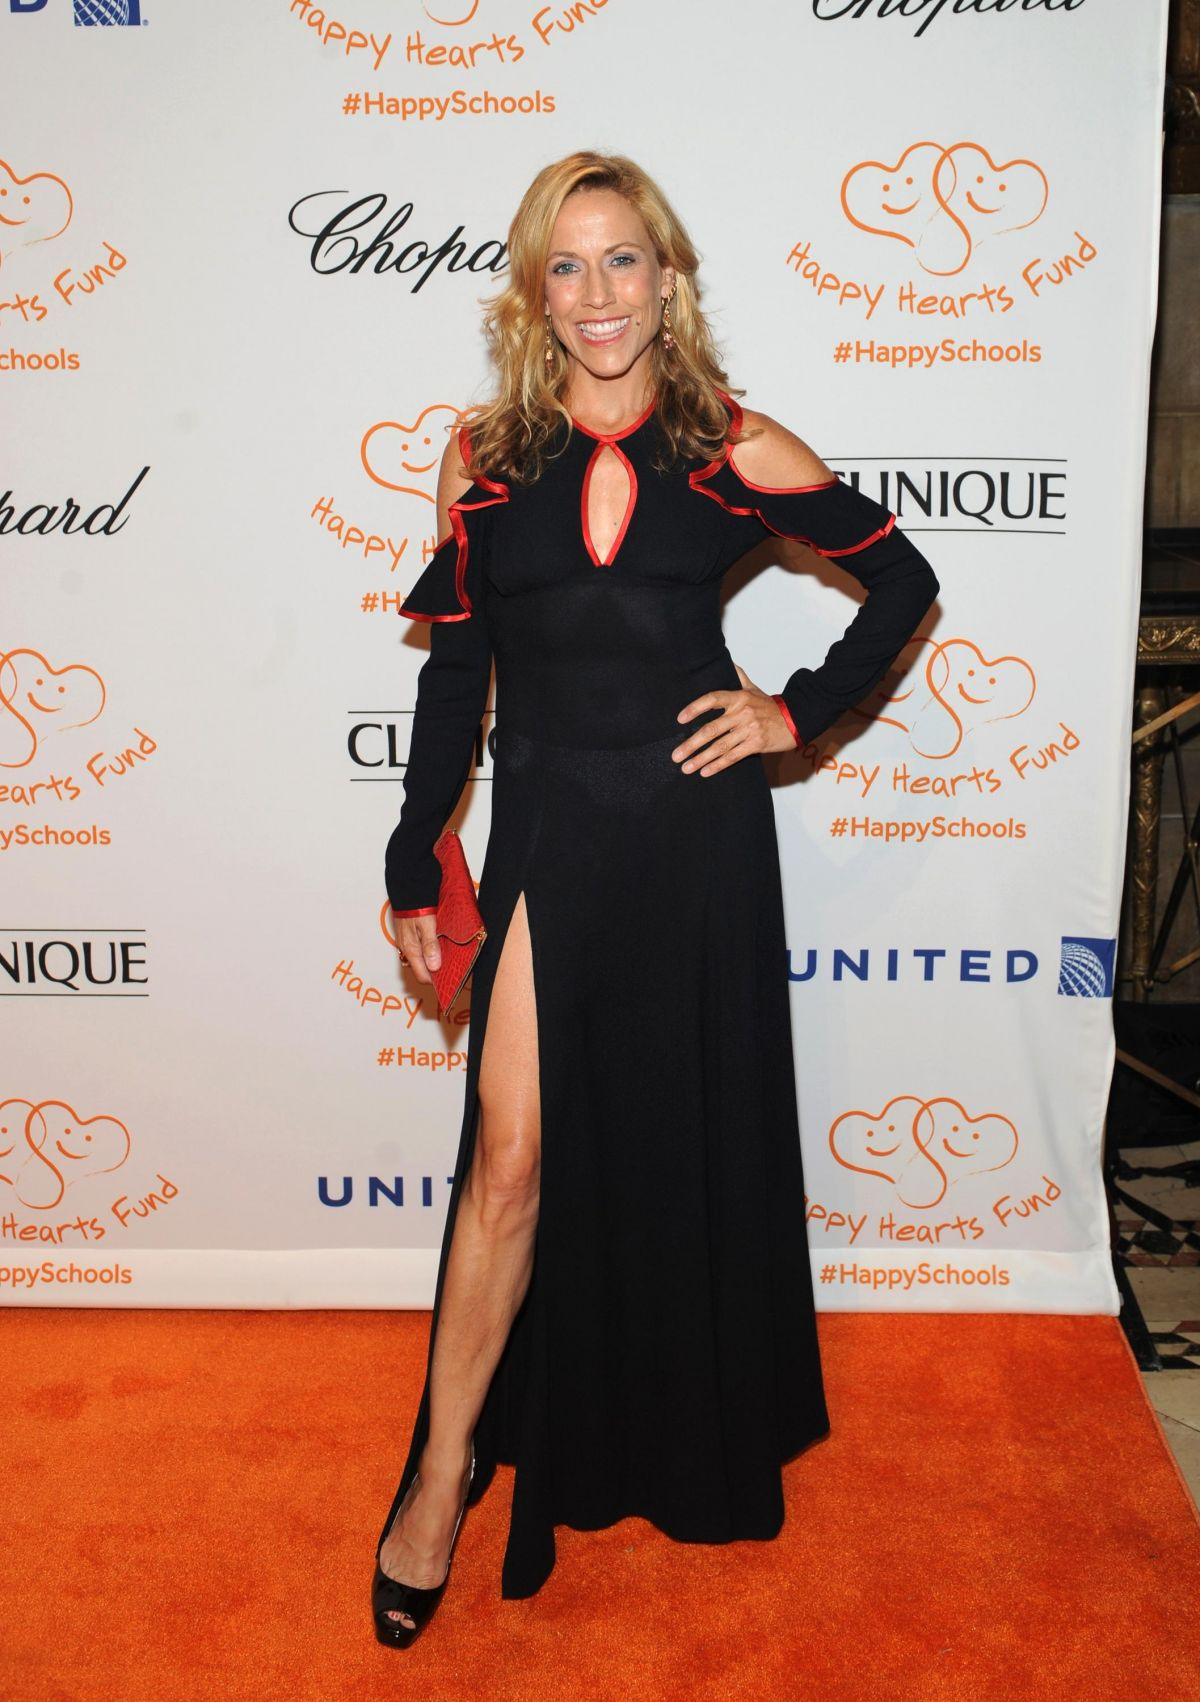 SHERYL CROW at Happy Fearts Fund 10 Tear Anniversary in New York